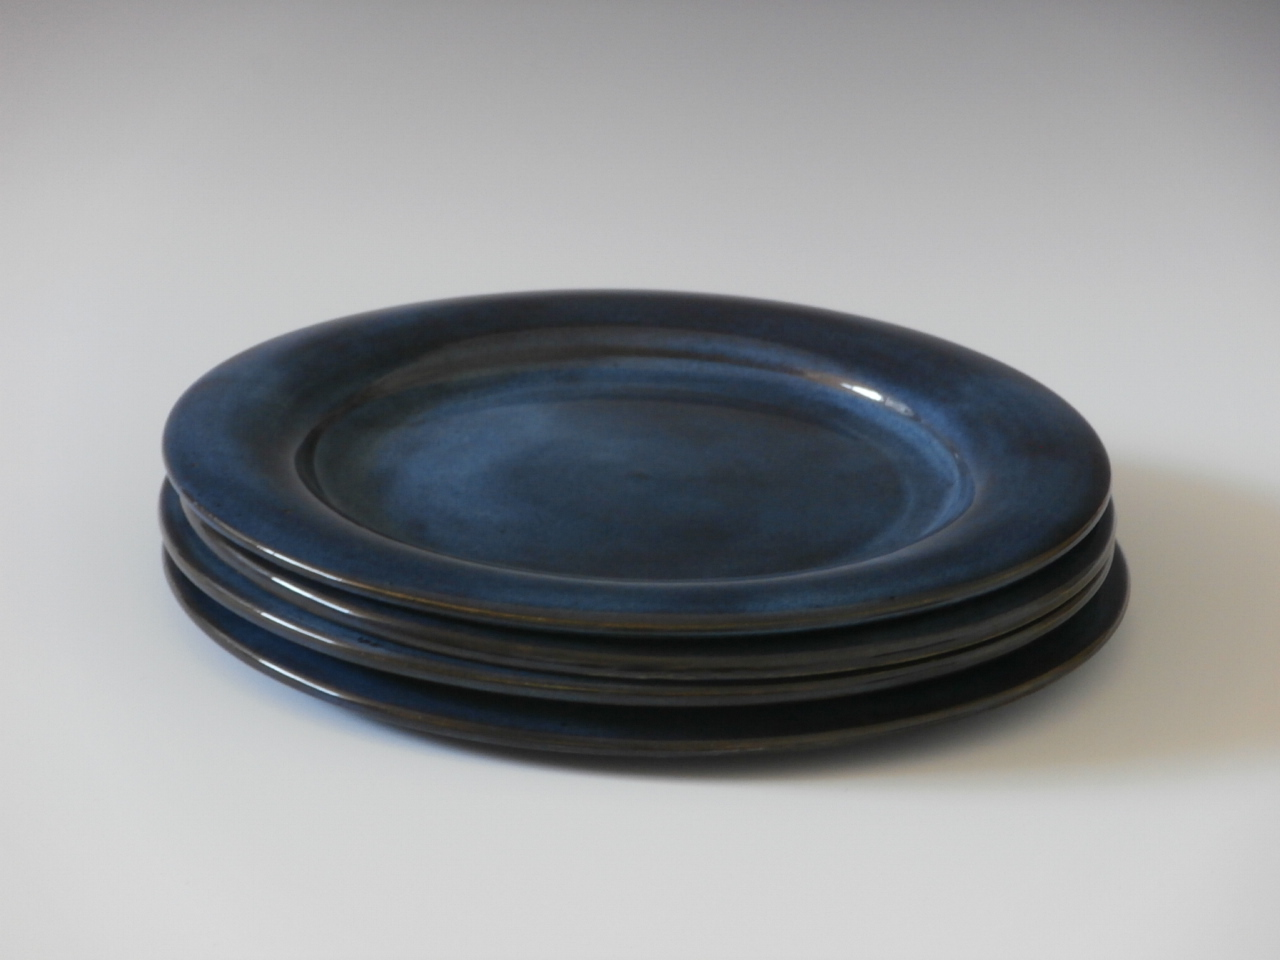 Navy blue dinner set